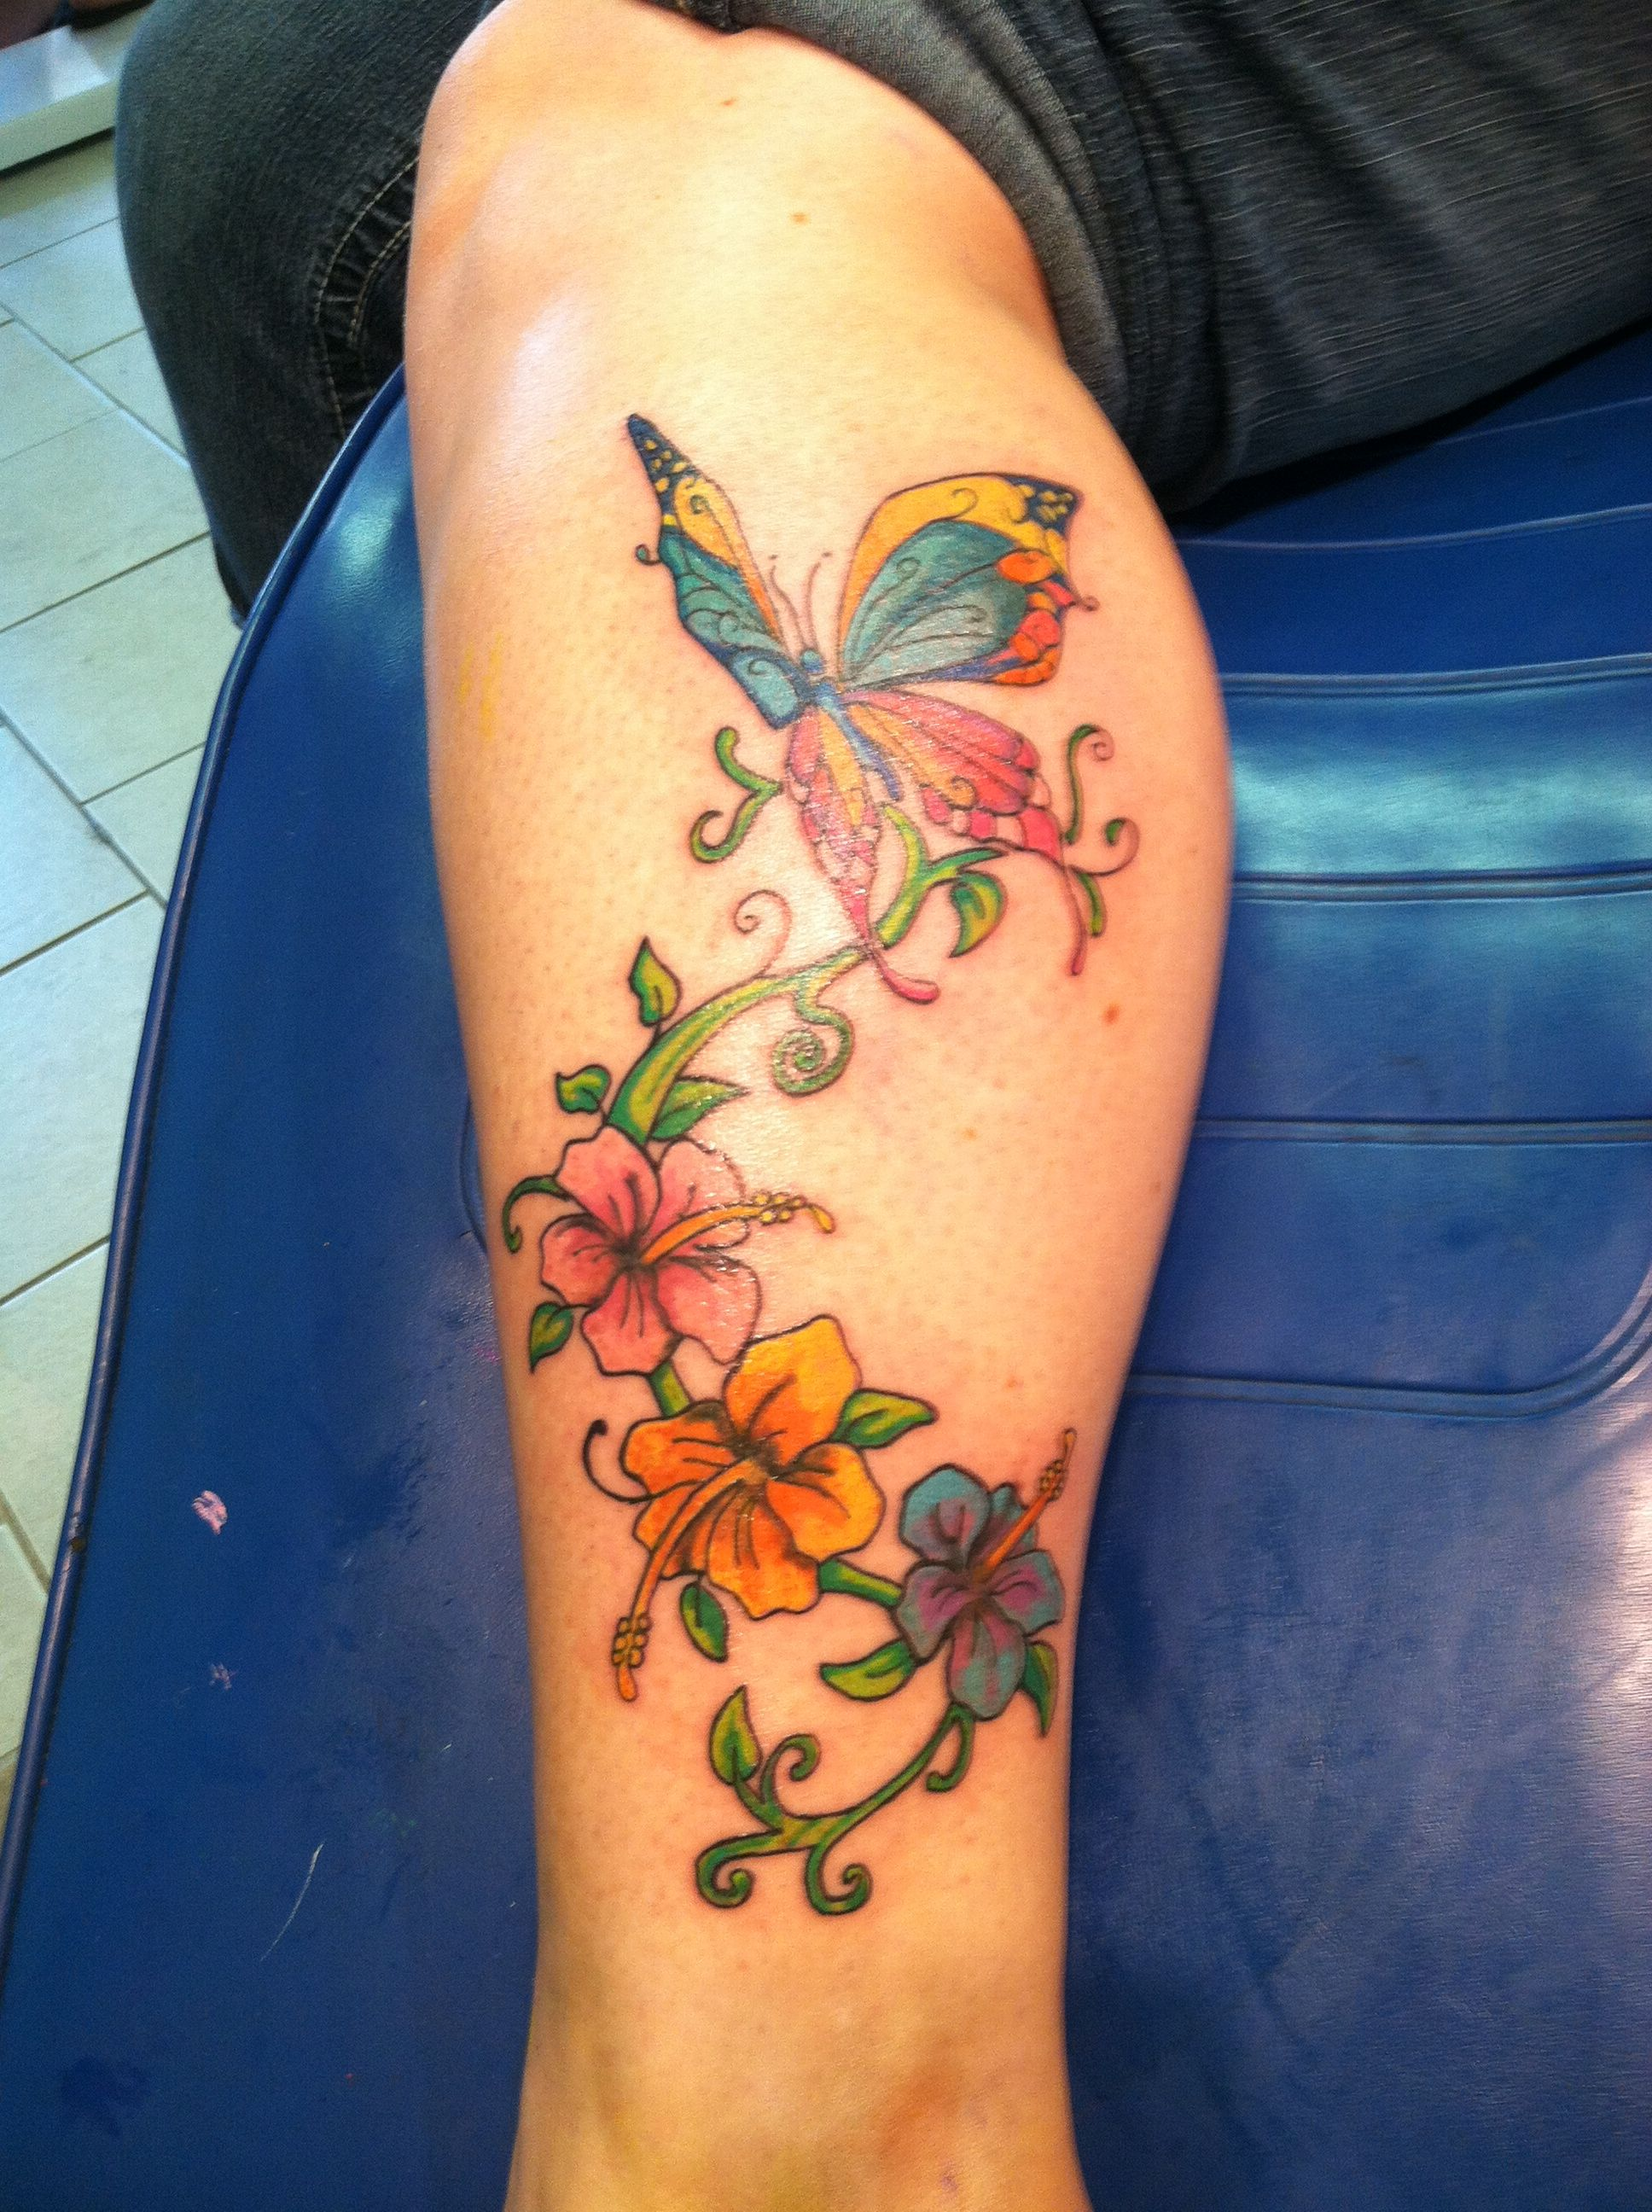 Pretty Flower Tattoos: #tattoo #butterfly #flowers #color #leg #calf #beautiful